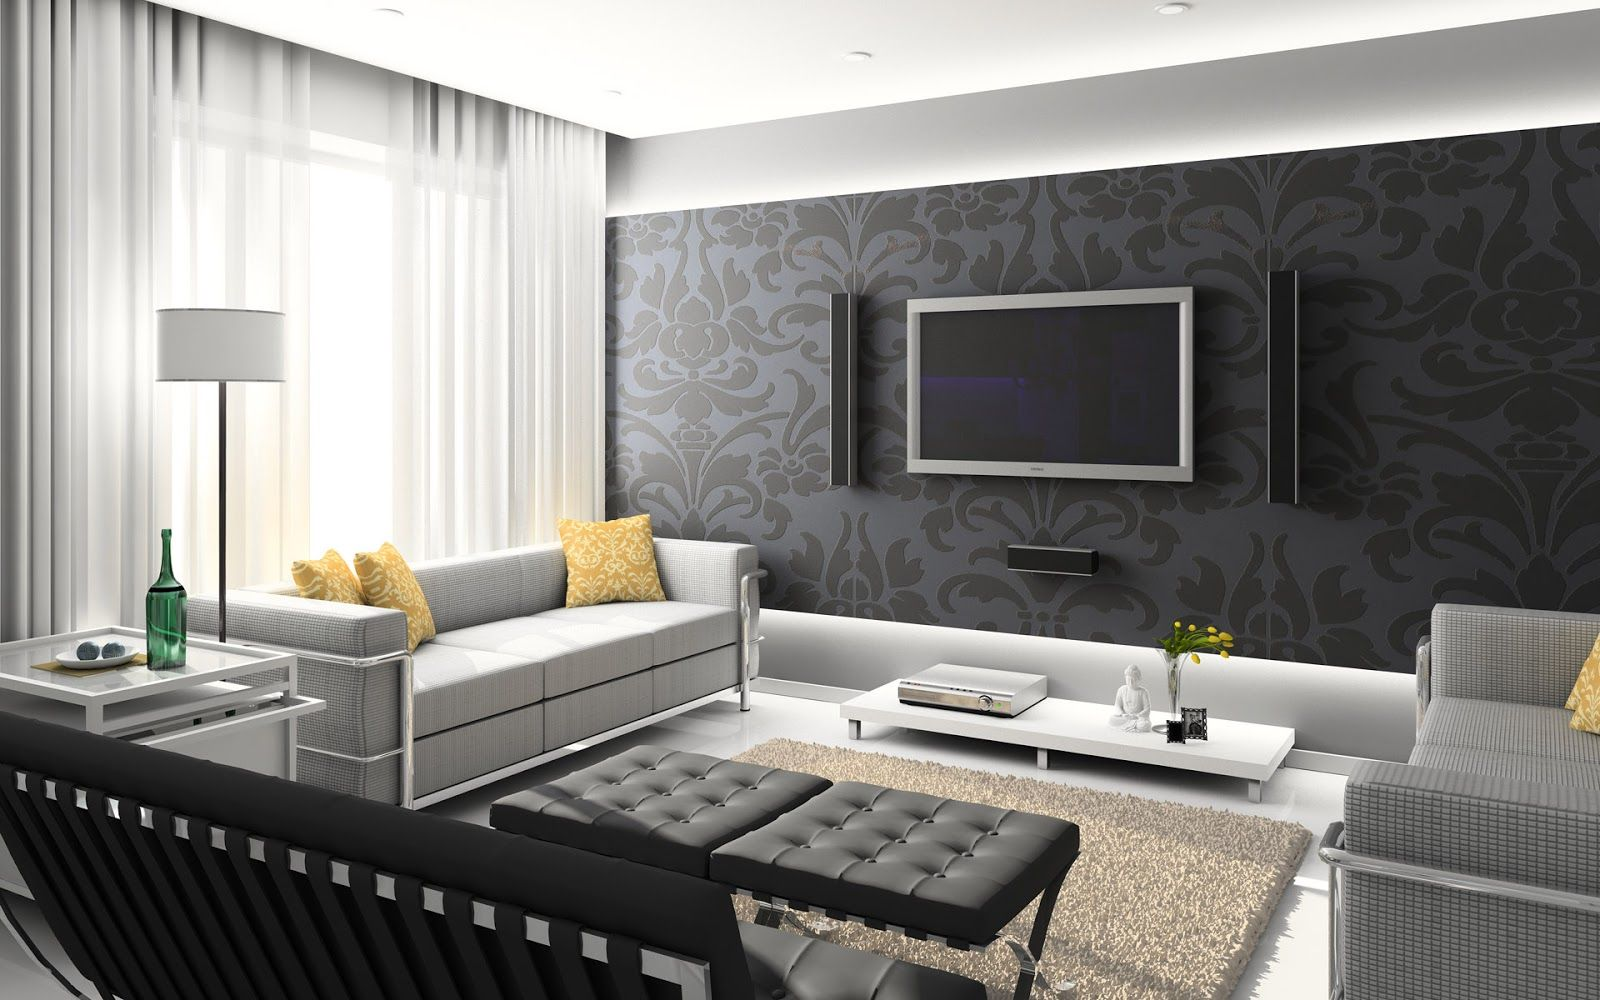 17 Best images about Home Wallpaper Designs on Pinterest Living room wallpaper  Wallpaper designs for walls. House Wallpaper Designs